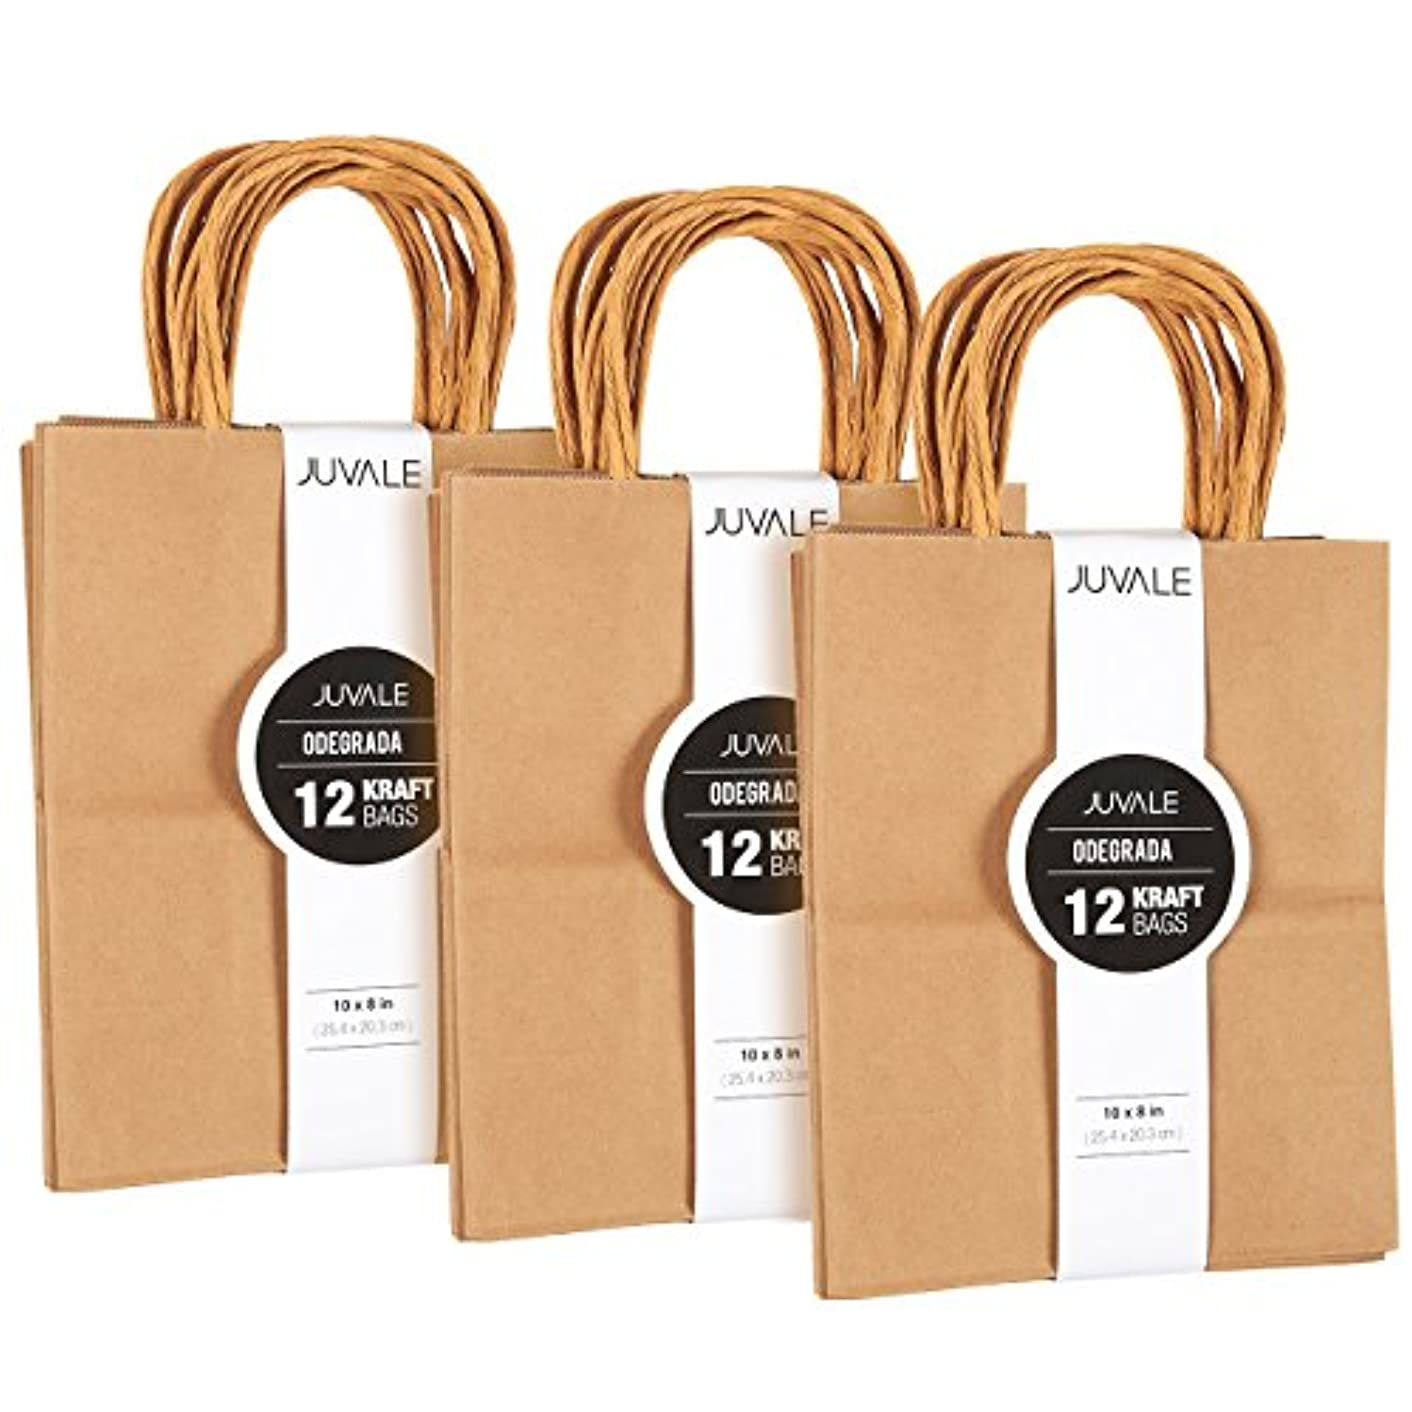 36-Count Brown Kraft Bags - Paper Bags with Handles, Great as Wedding Favor Bags, Shower Favor Bags, Bridal Party Gift Bags, Medium, 8 x 10 x 4.5 Inches